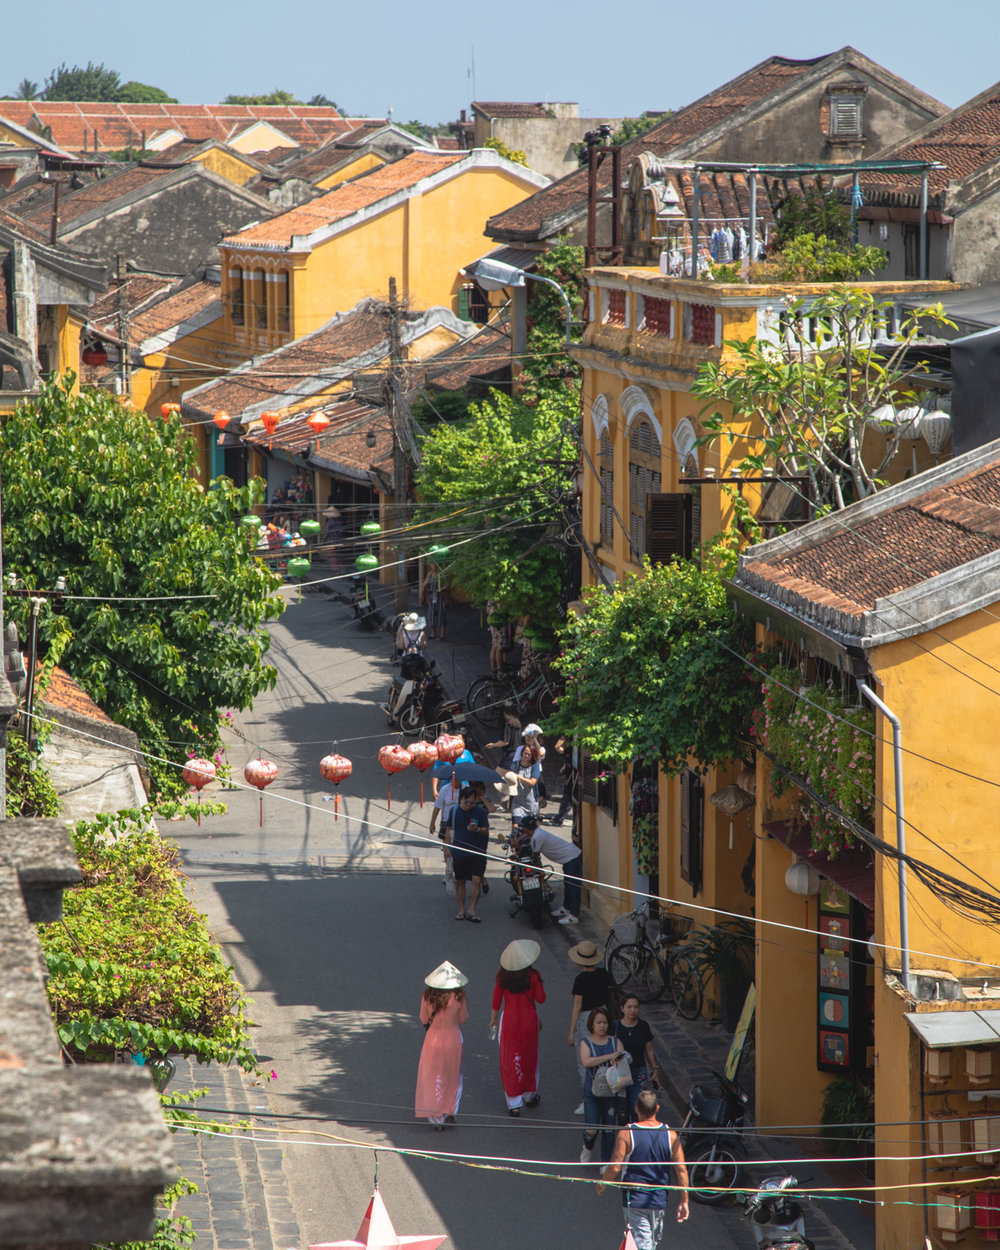 The Old Town in Hoi An